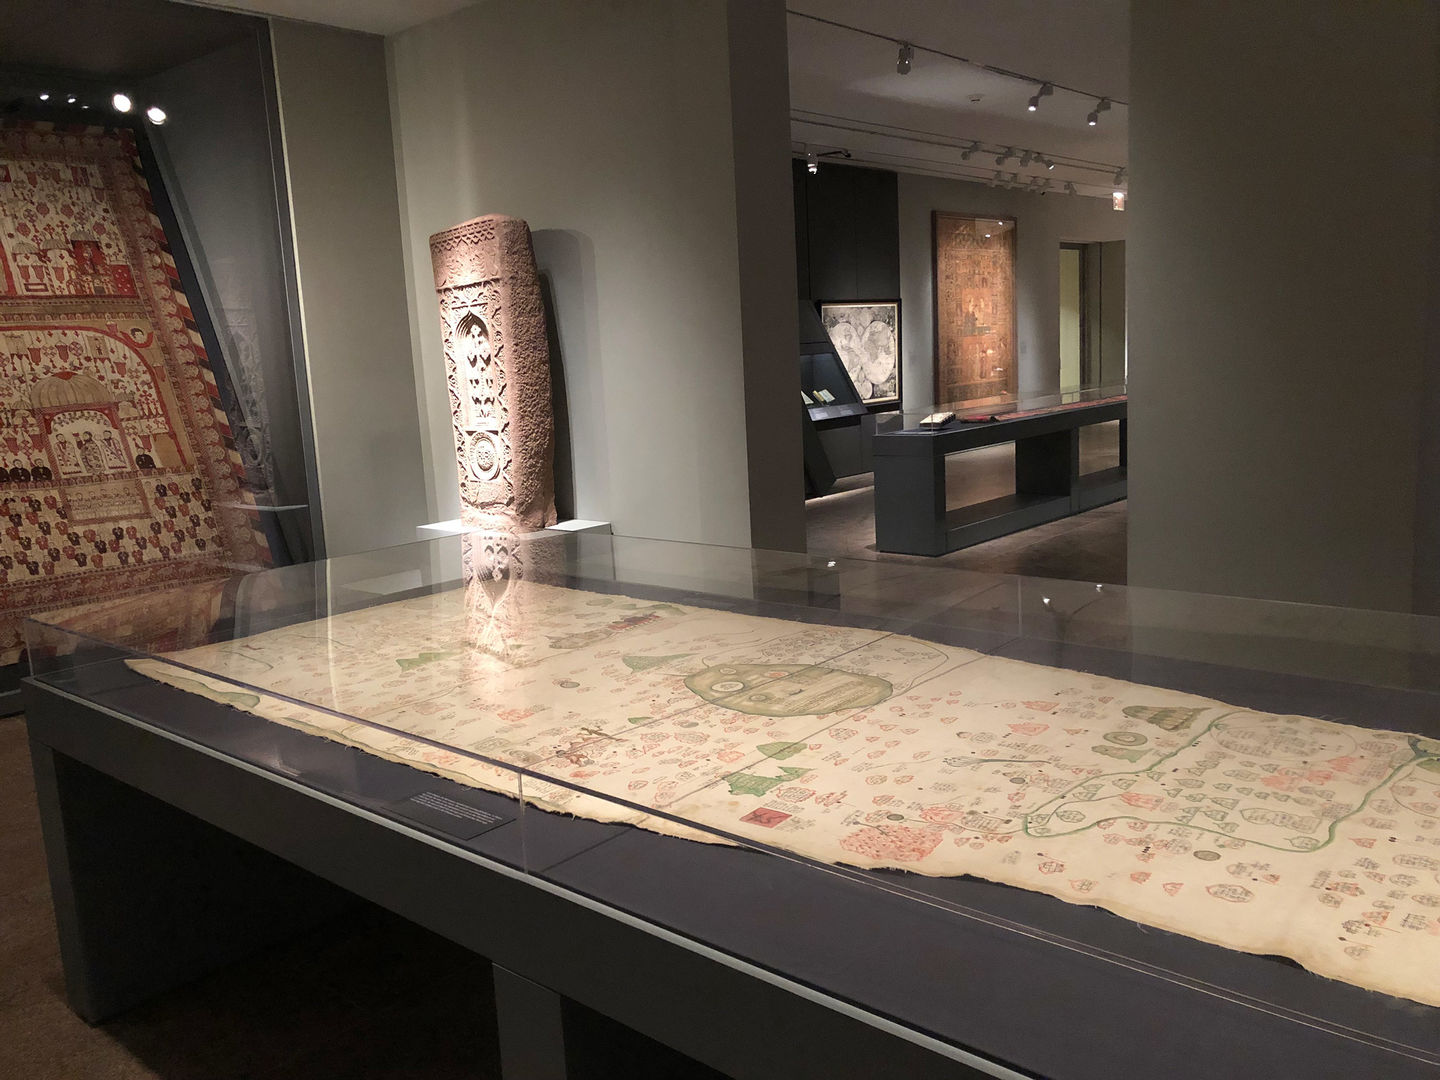 A Visual History: The Huge Map on View in Armenia!   The ... on map cigarette case, map china, map stand, gps case, map banner, map jacket, map northern hemisphere, map cabinet, map presentation case, map tools,